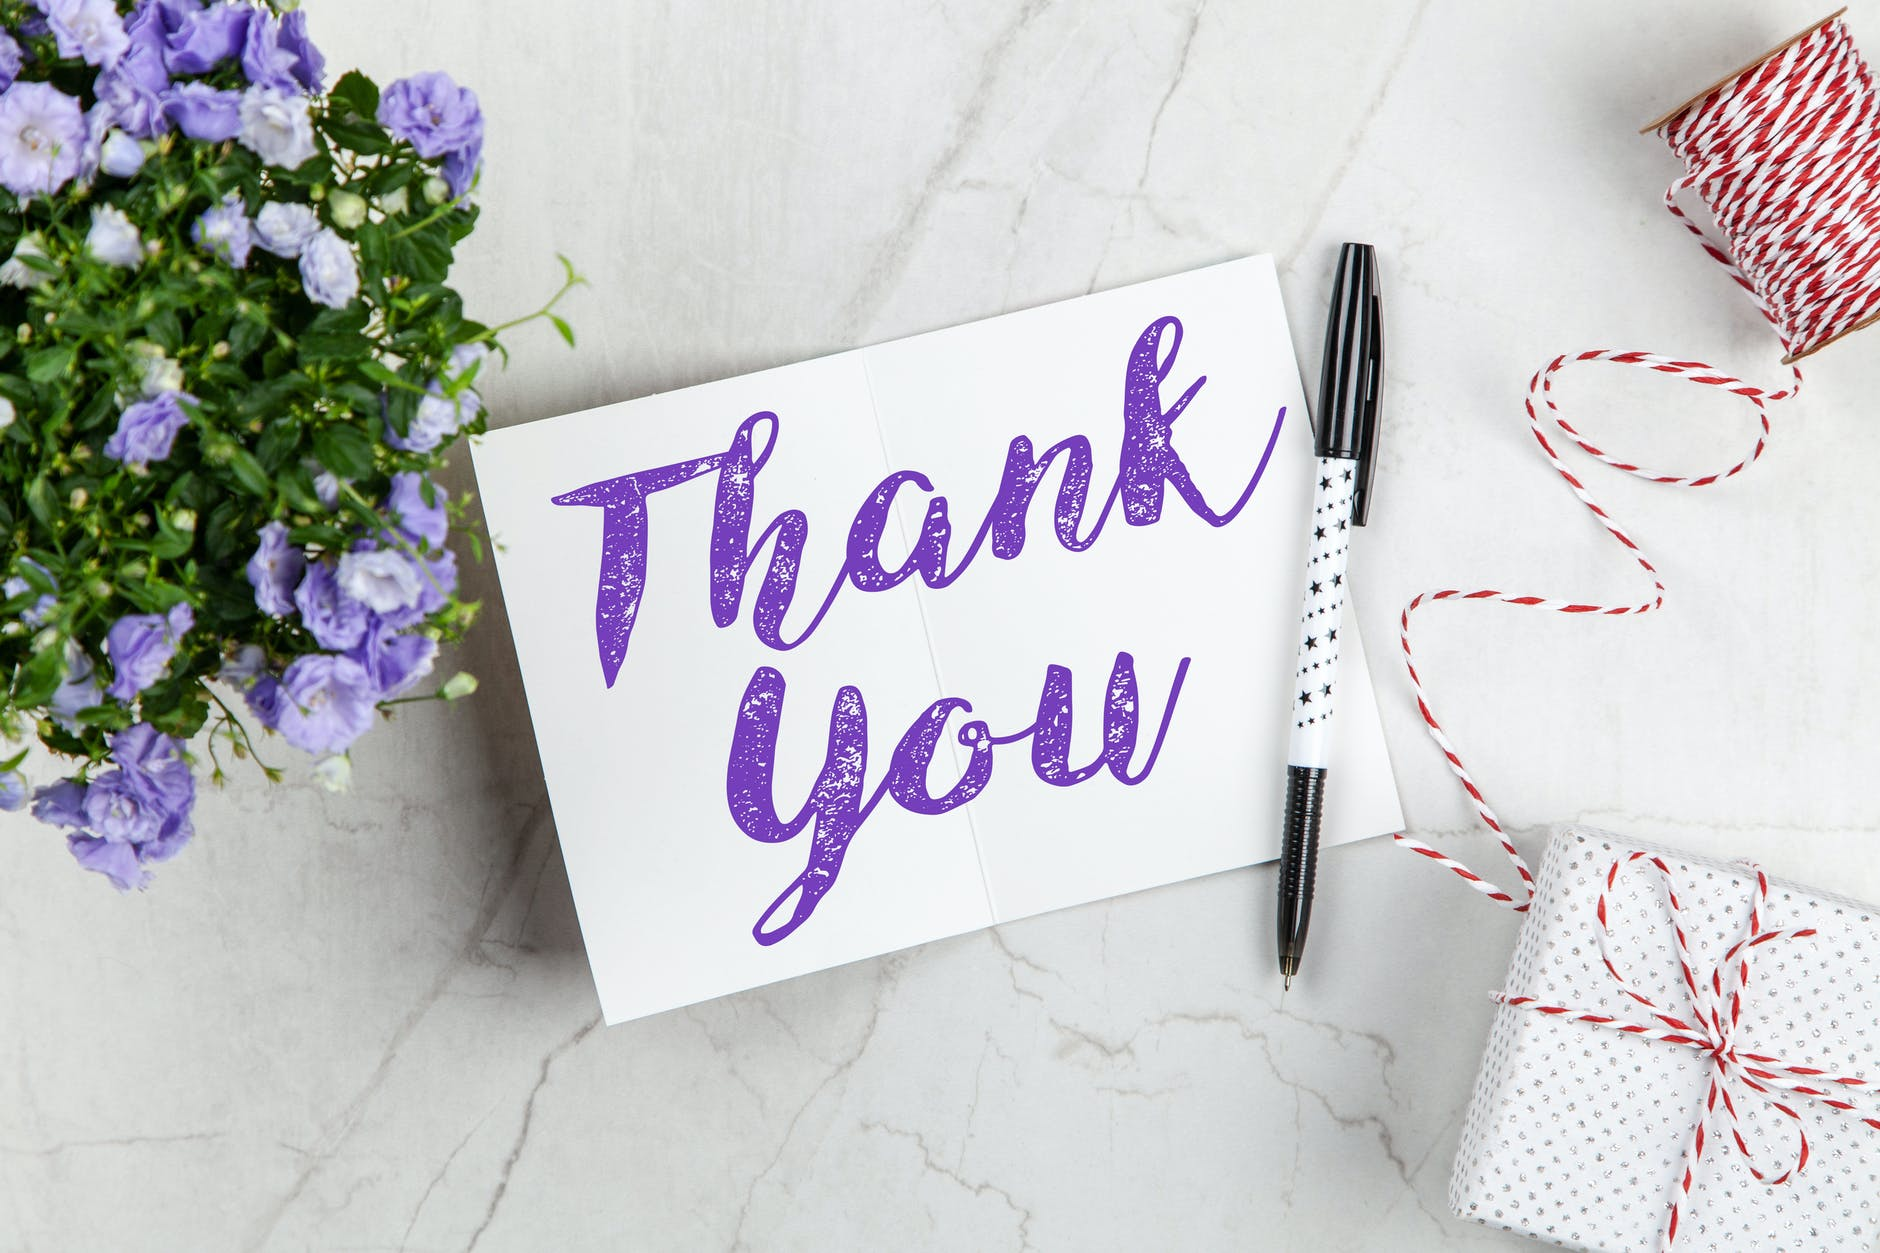 5 Tips to Make Gratitude a Part of Your Life